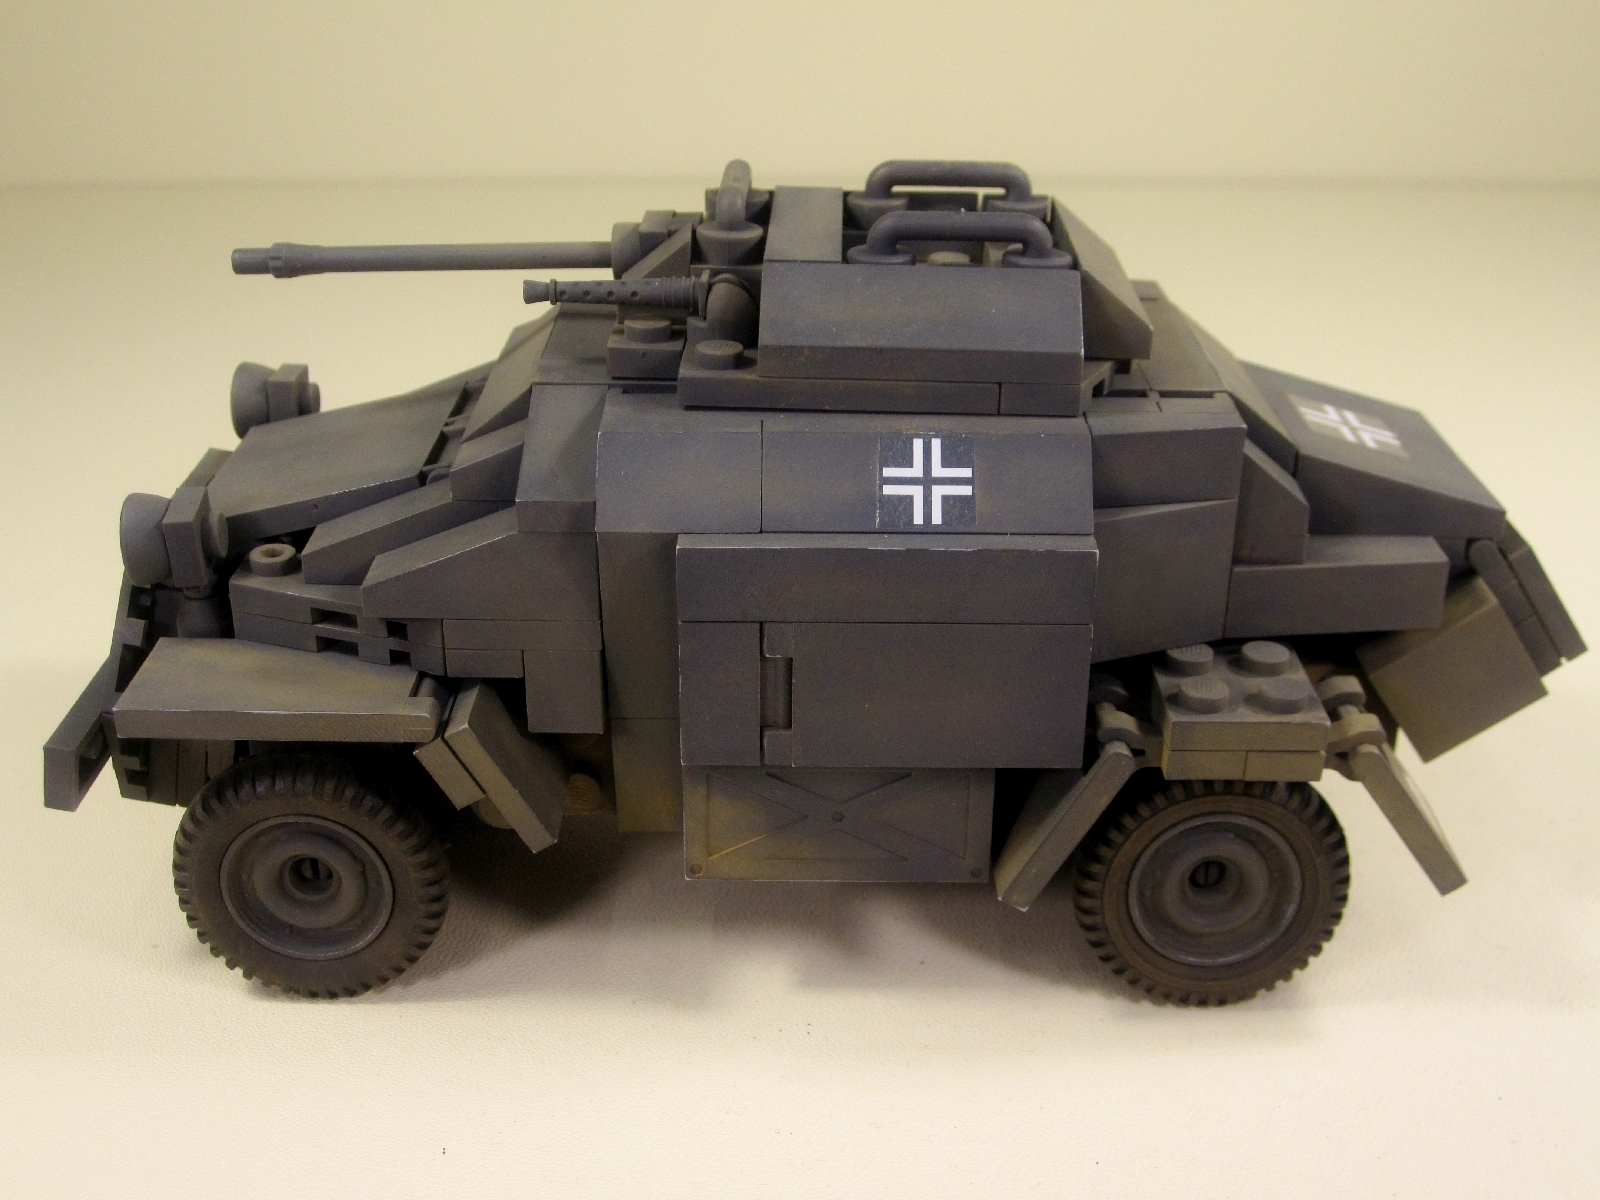 Cobi_2366_SdKfz_222_www.super-bricks.de_camouflage_paint_Small_Army_Tarnung_02